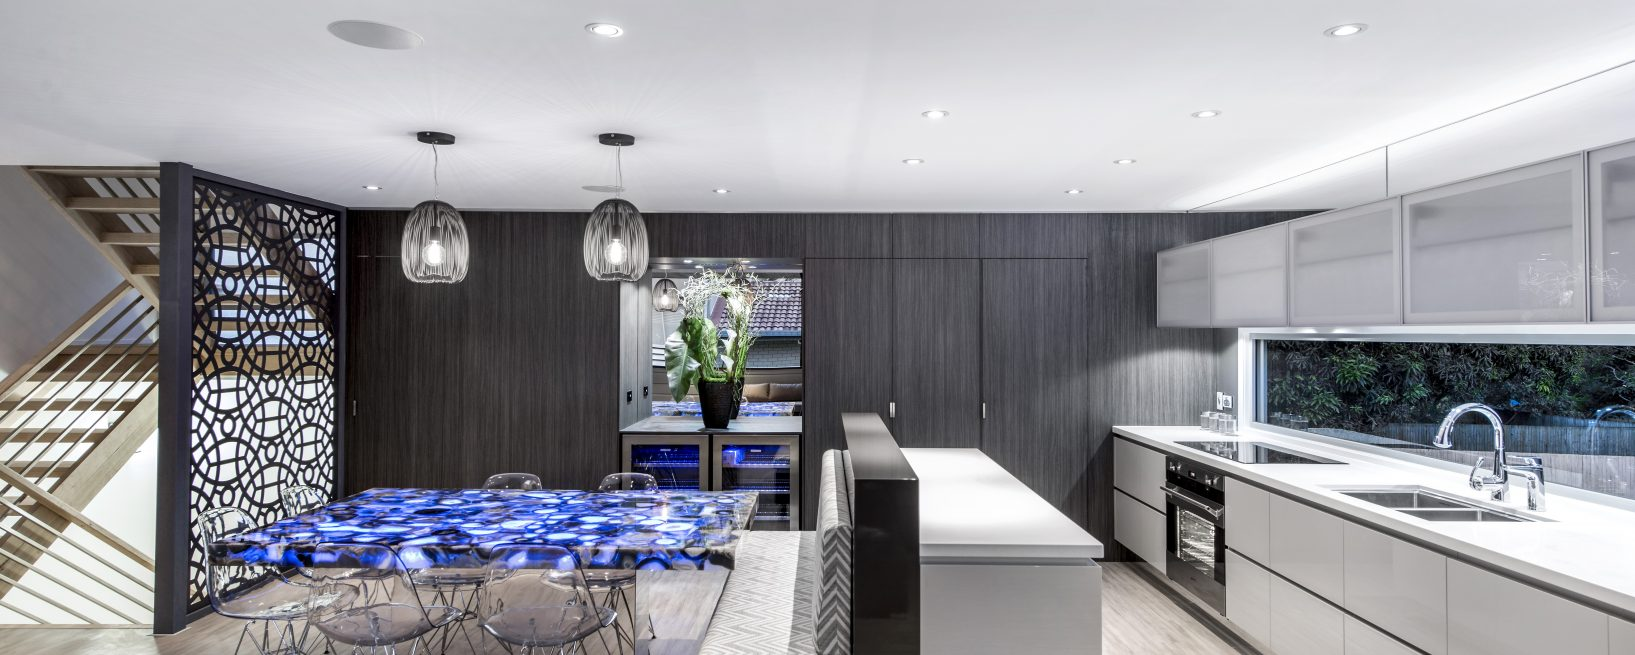 Luxary Kitchen Design Brisbane